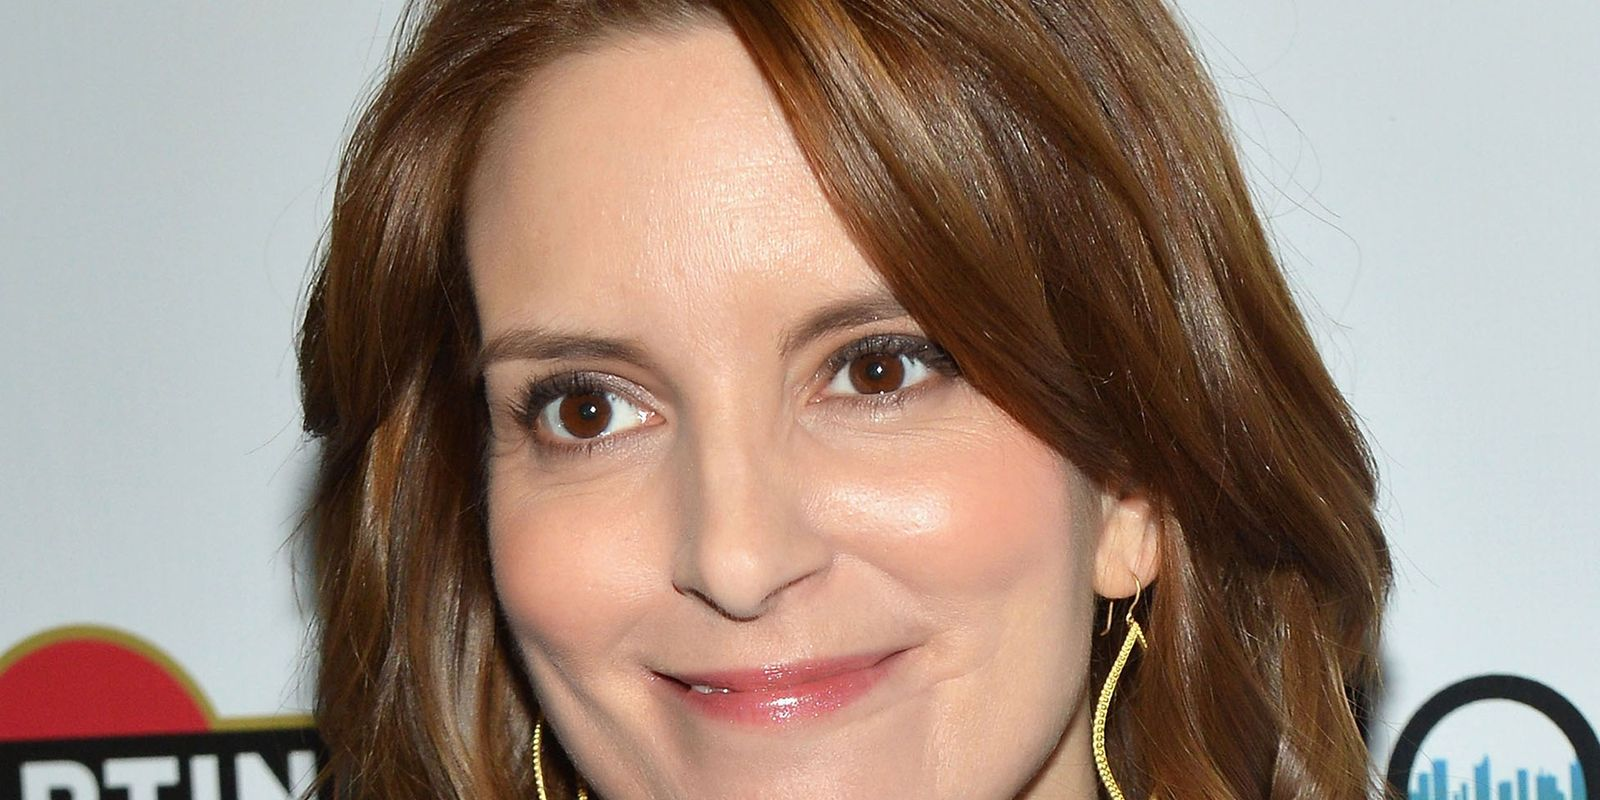 tina fey hairstyles : Best Medium Length Hairstyles - Medium Hairstyles for Any Age